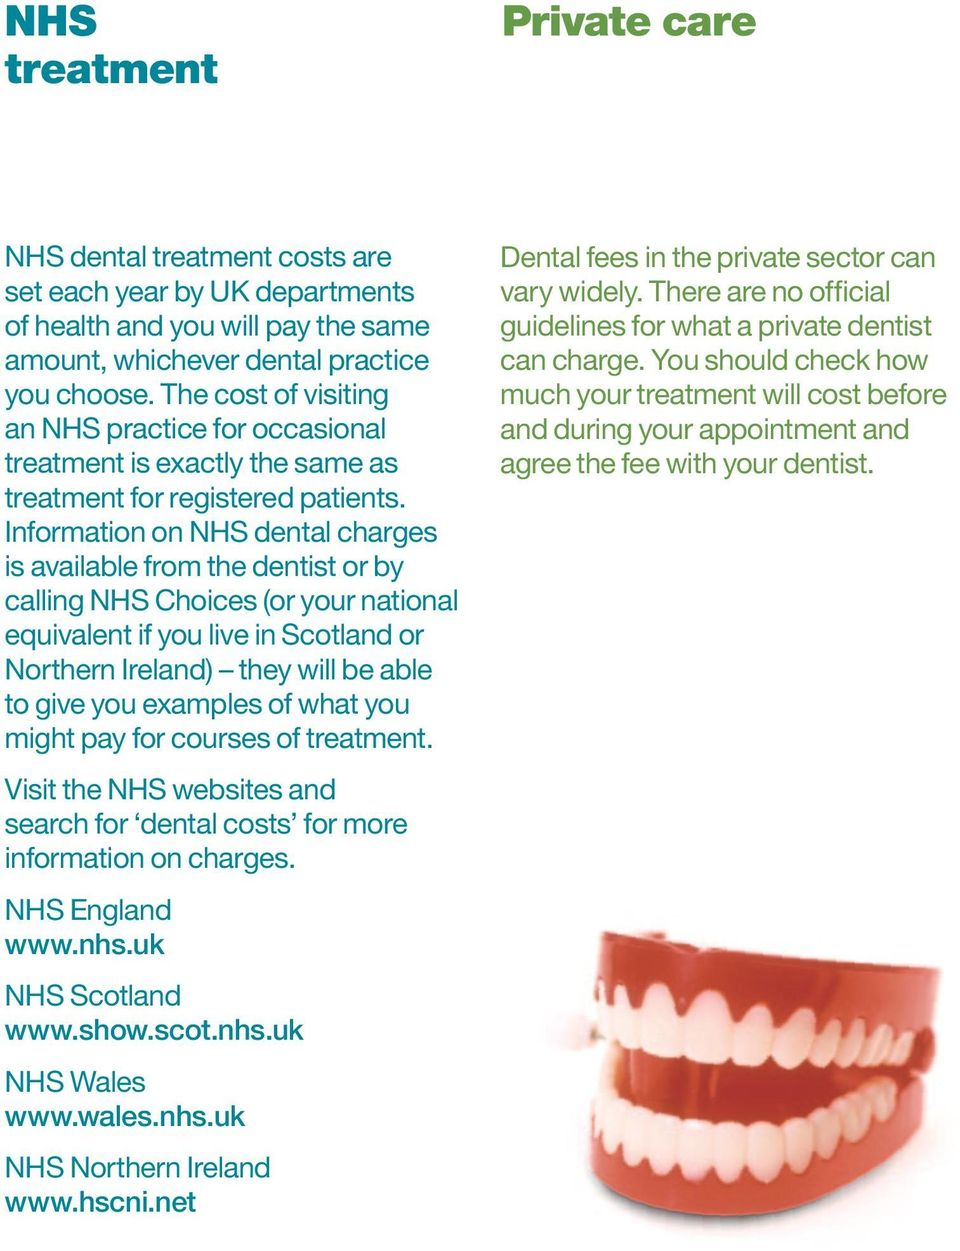 Information on NHS dental charges is available from the dentist or by calling NHS Choices (or your national equivalent if you live in Scotland or Northern Ireland) they will be able to give you